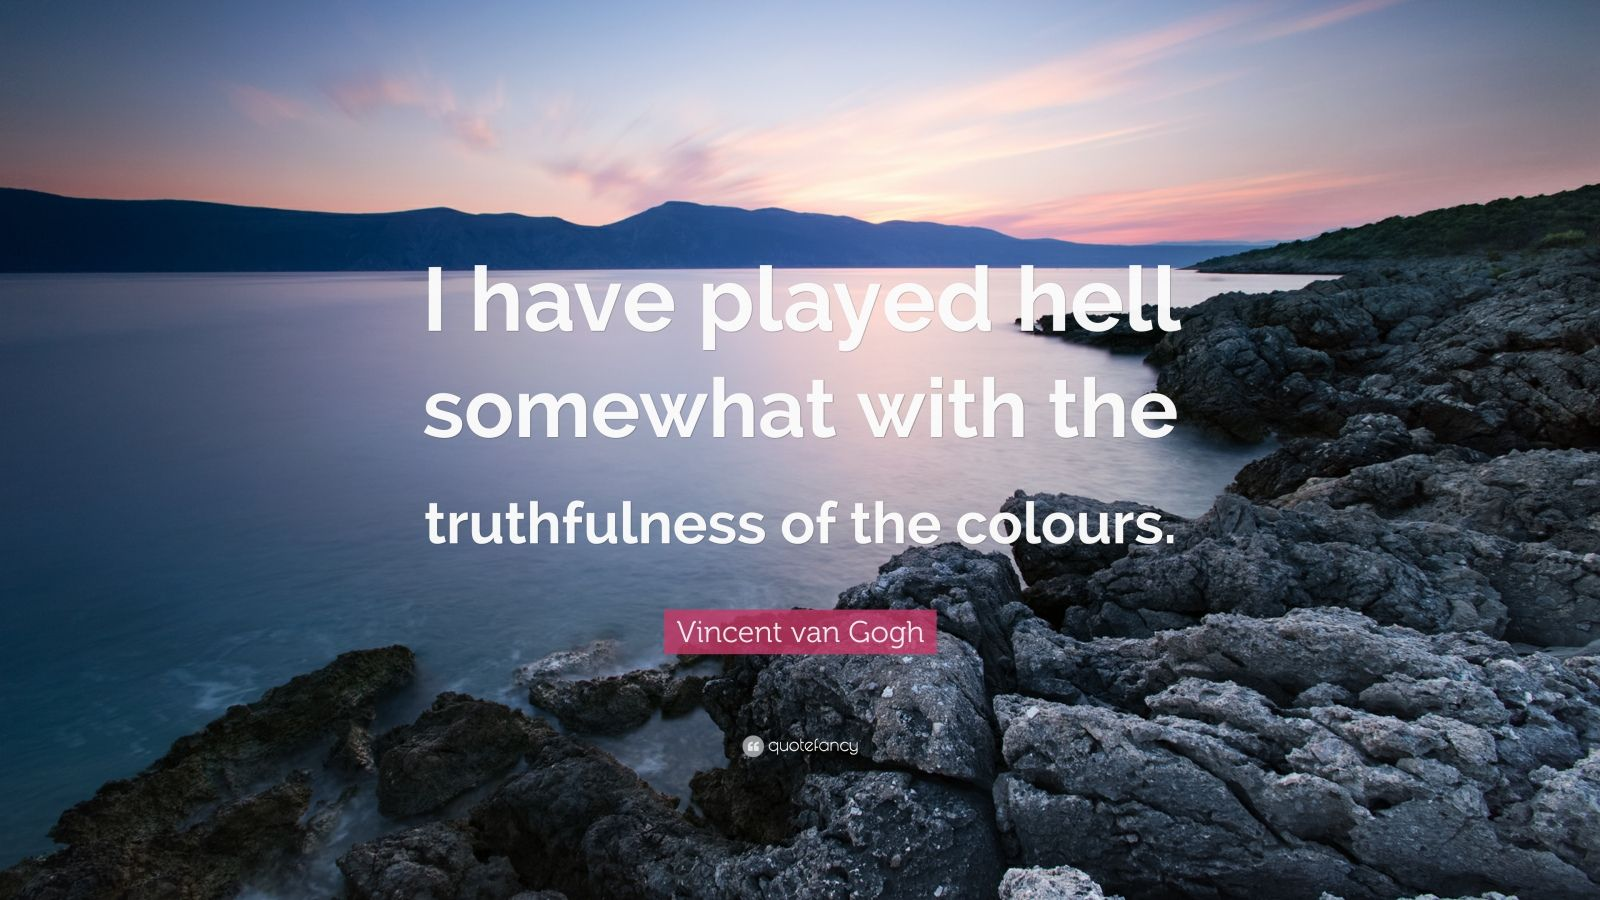 """Vincent Van Gogh Quotes: """"I have played hell somewhat with the truthfulness of the colours."""" — Vincent van Gogh"""